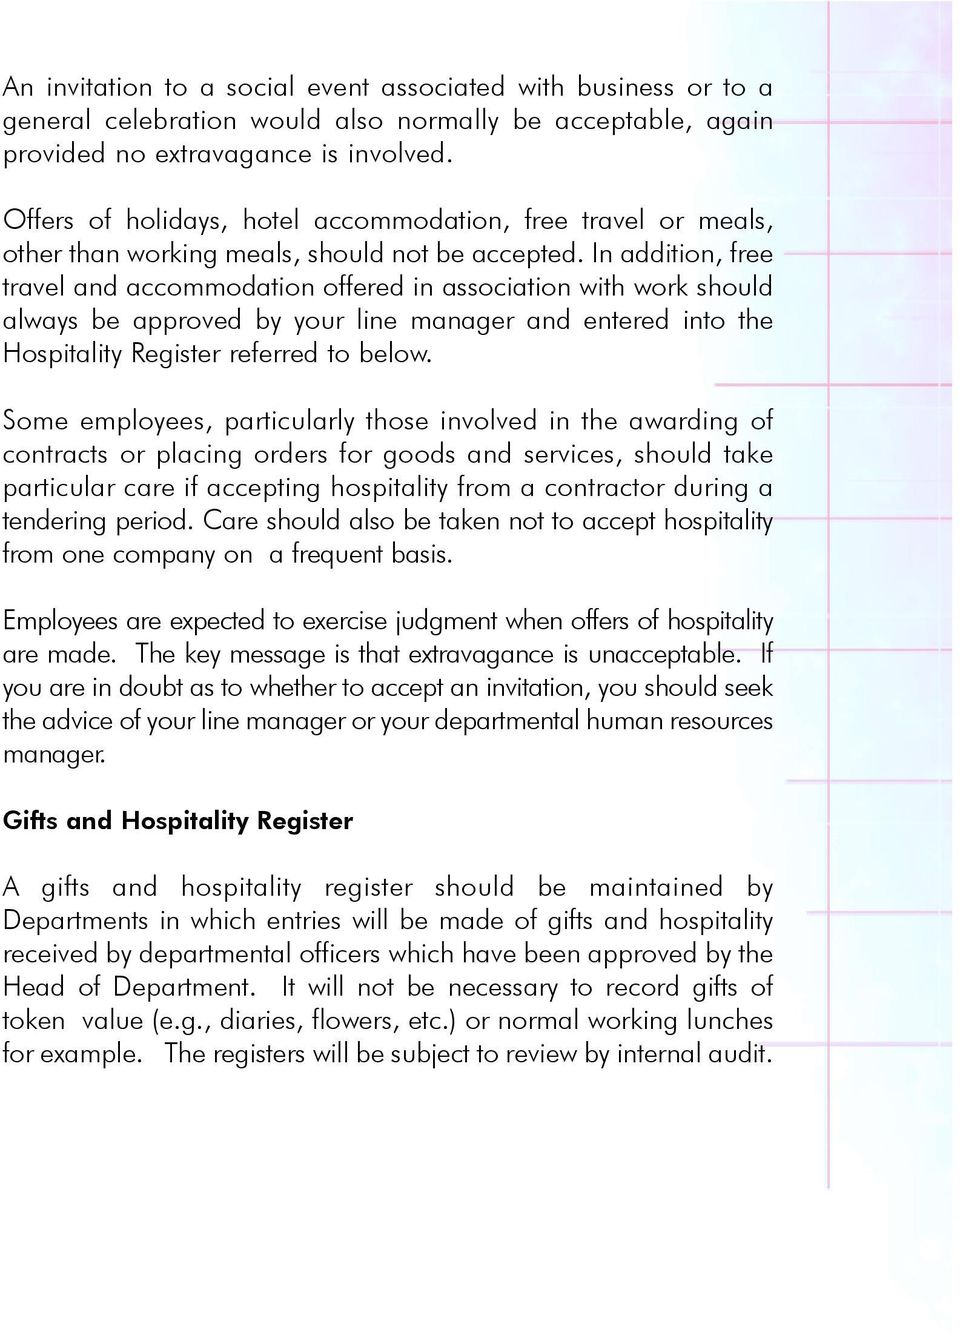 In addition, free travel and accommodation offered in association with work should always be approved by your line manager and entered into the Hospitality Register referred to below.